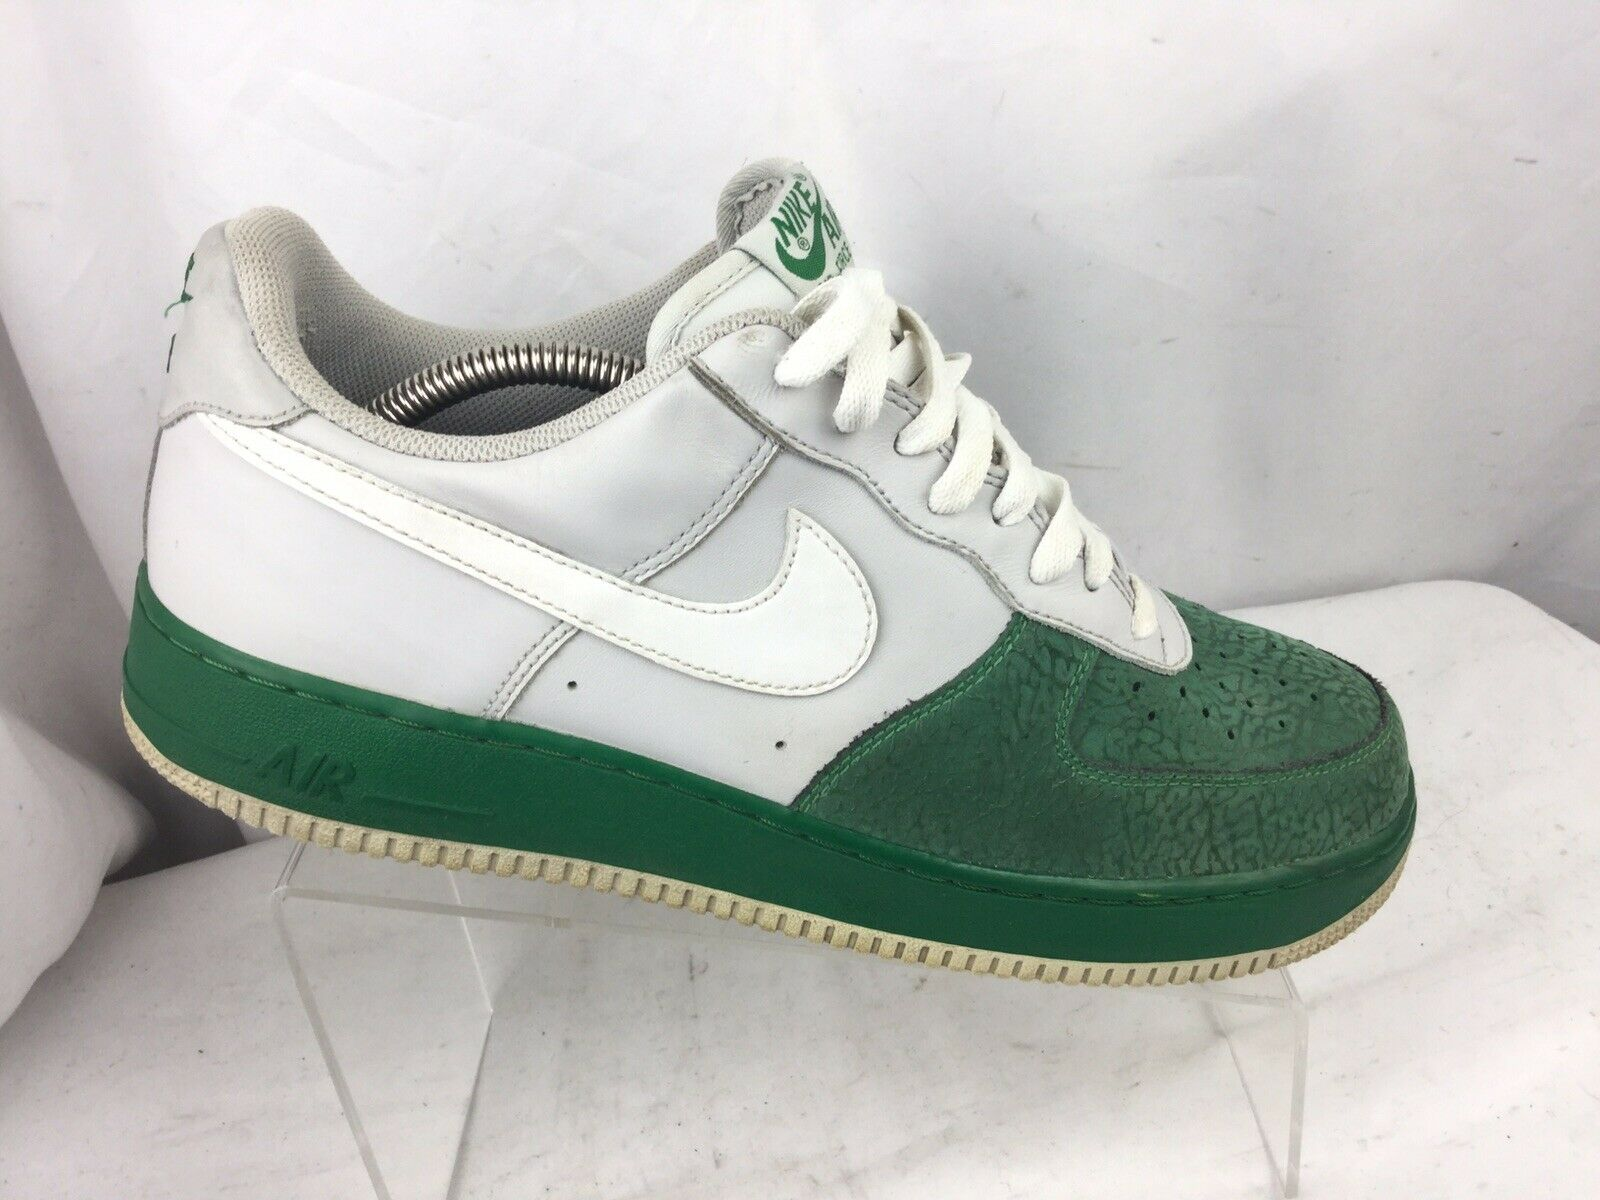 Nike Air Force One 1 Low 317295 013 Neutral GreyWhitePine Green, Size 11.5